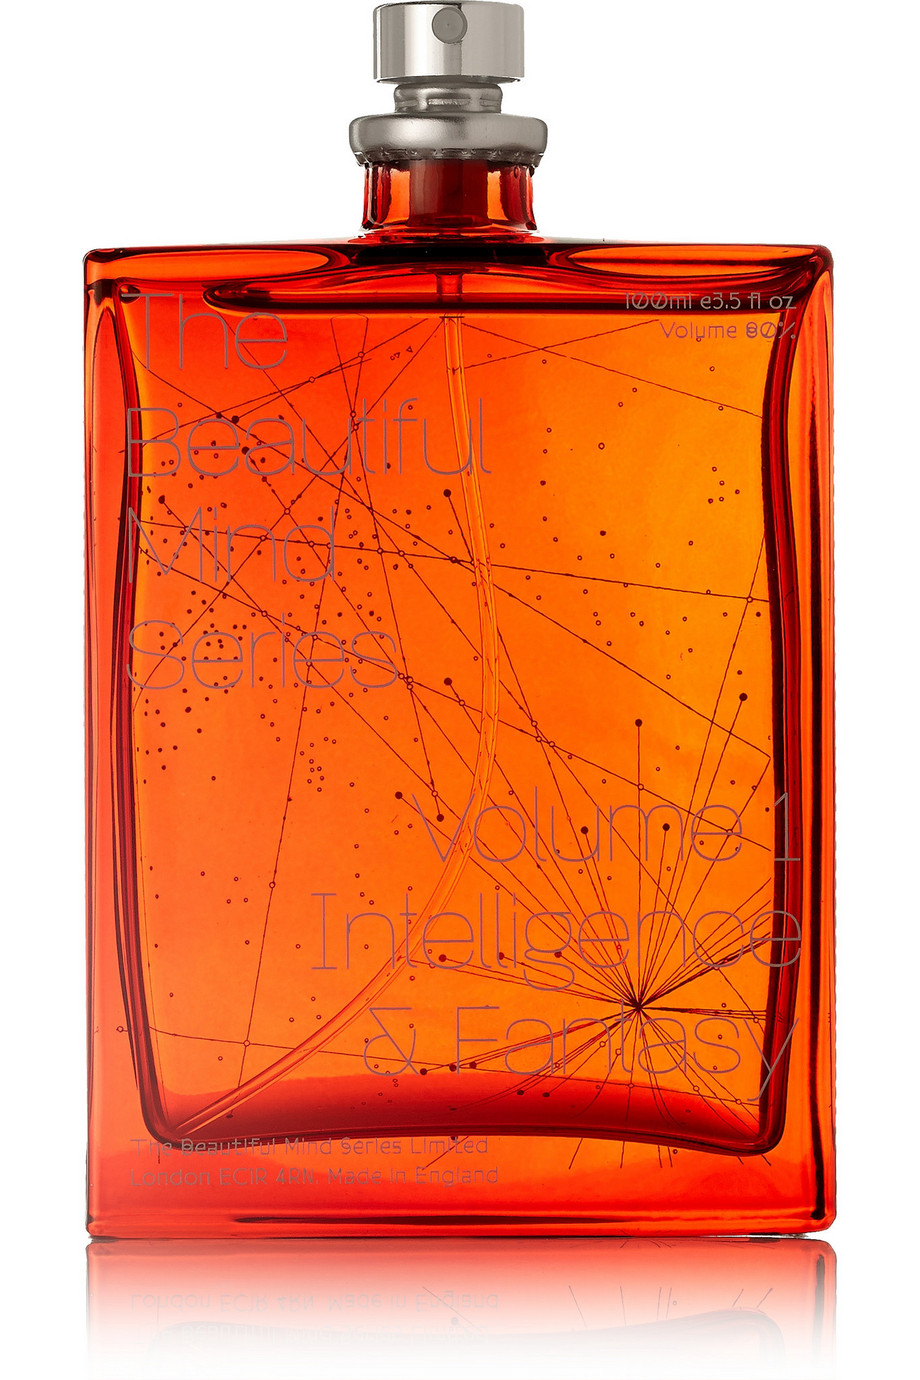 Volume 1 - Intelligence & Fantasy, 100ml, by The Beautiful Mind Series